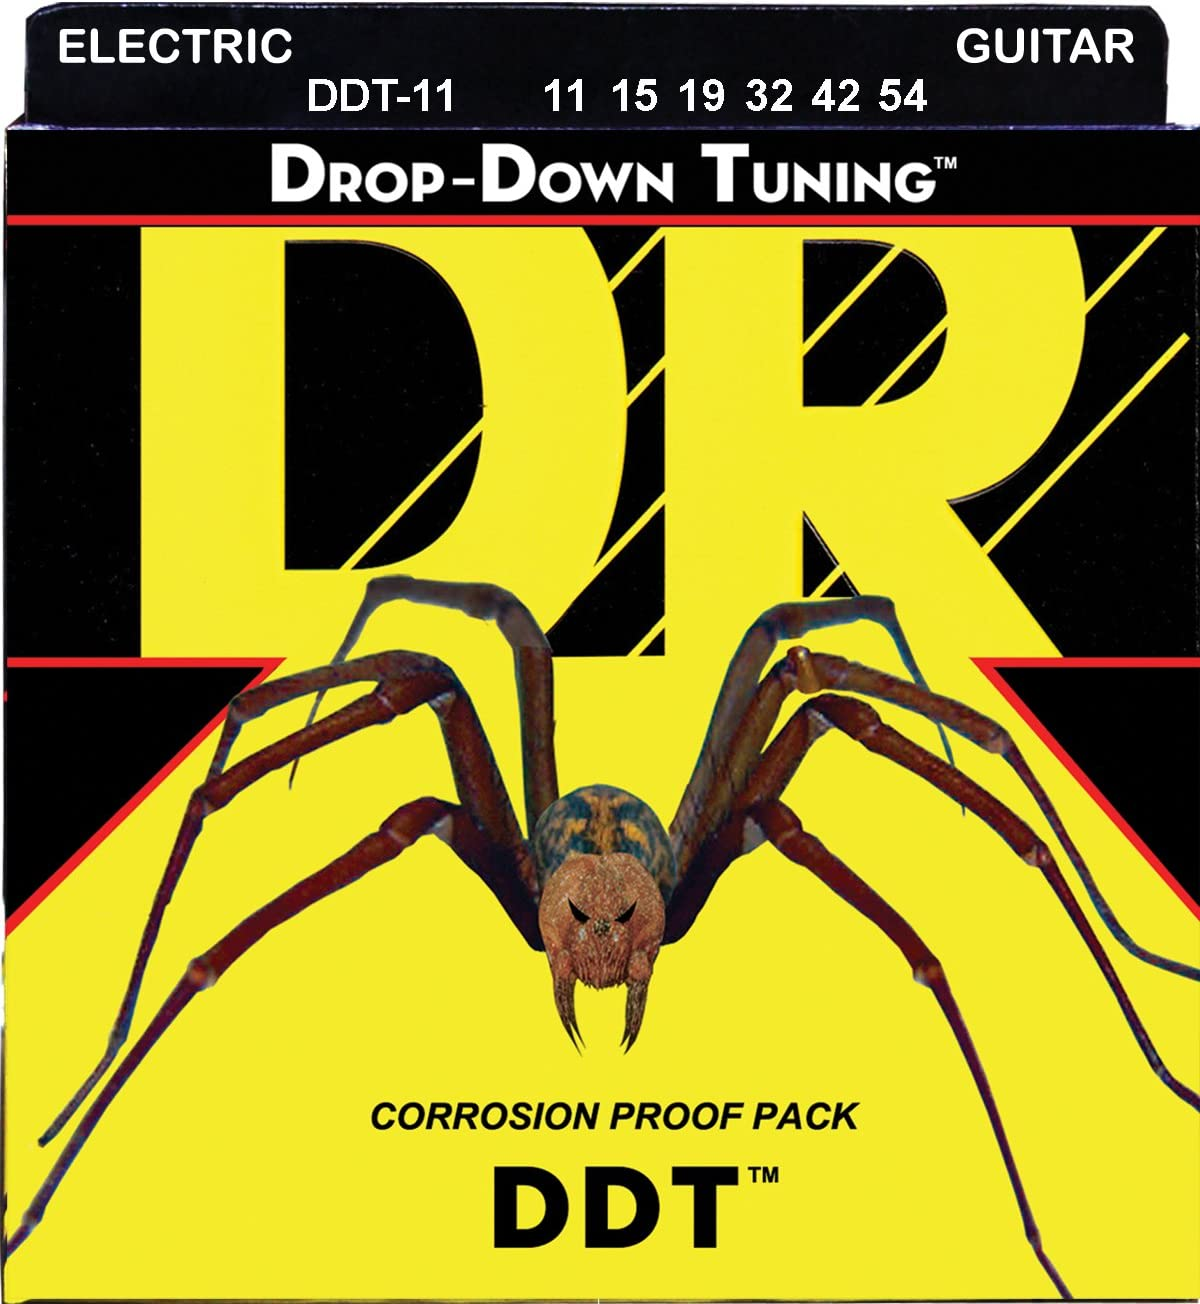 DR Strings DDT-11 Drop Down Tuning Extra Heavy Electric Guitar Strings 11-54